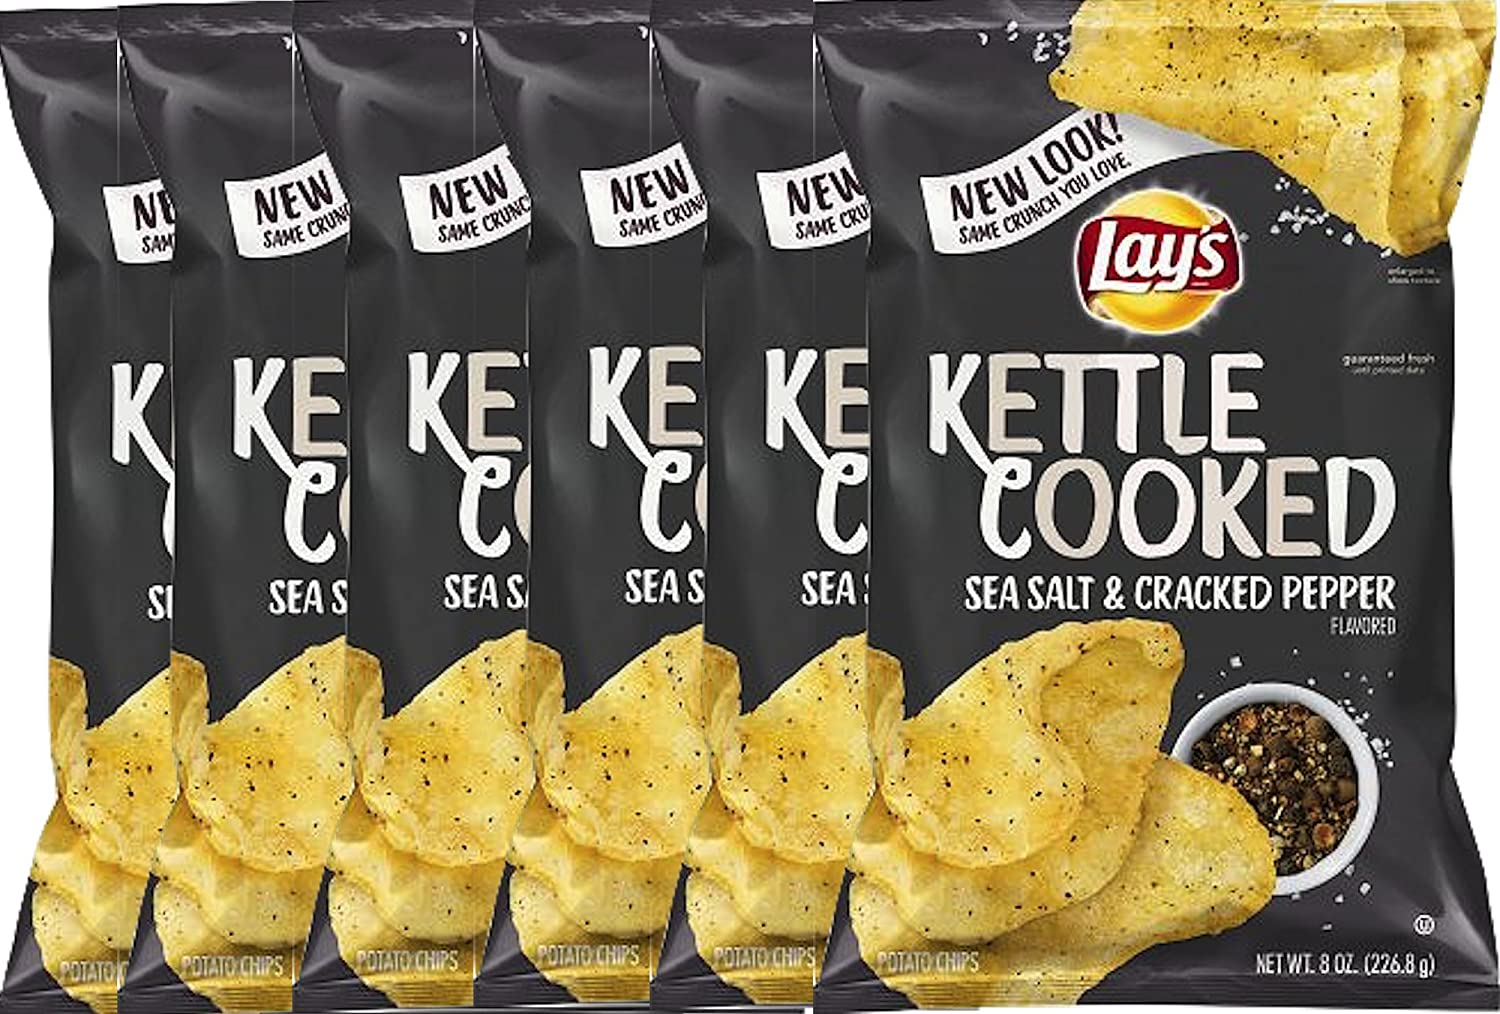 Lay's Kettle Cooked Potato Now free Our shop OFFers the best service shipping Chips Black Salt Pepper Sea Cracked